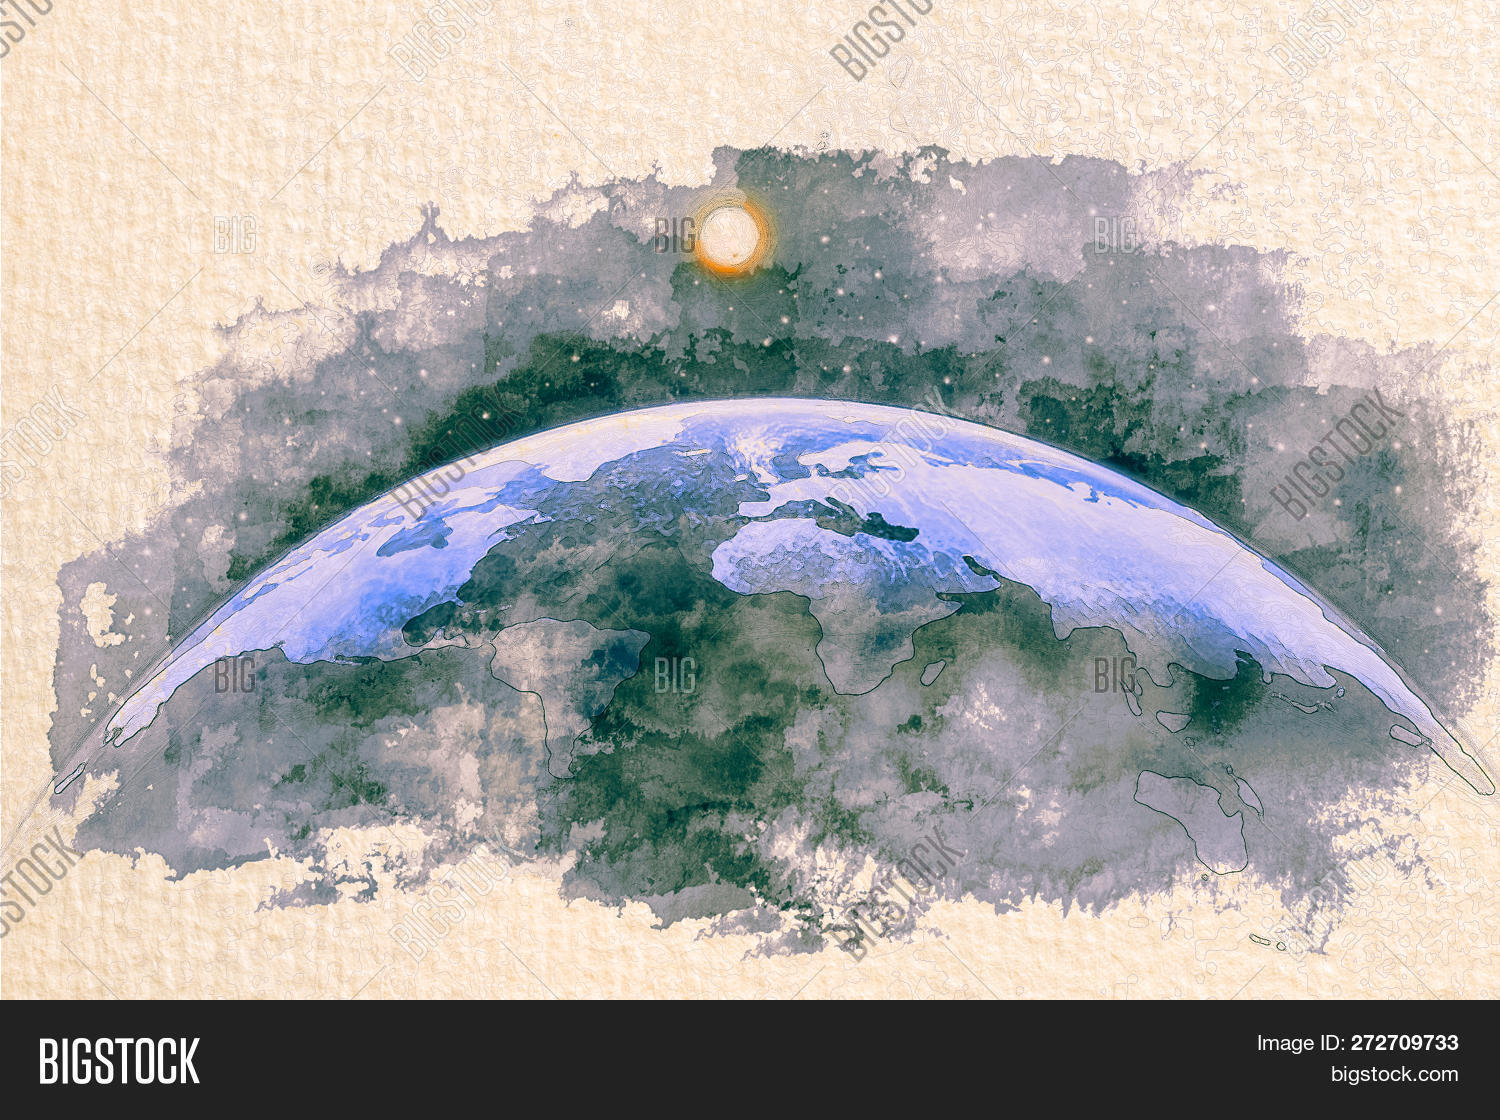 africa,america,art,asia,atlas,atmosphere,australia,background,blue,business,cartography,continent,dome,drawn,earth,europe,flat,geography,global,globe,hand,hemisphere,international,map,north,ocean,orbit,painting,paper,planet,postcard,retro,satellite,science,semi,sketch,south,space,sphere,star,sun,the,topography,travel,umbrella,usa,view,watercolor,world,worldwide